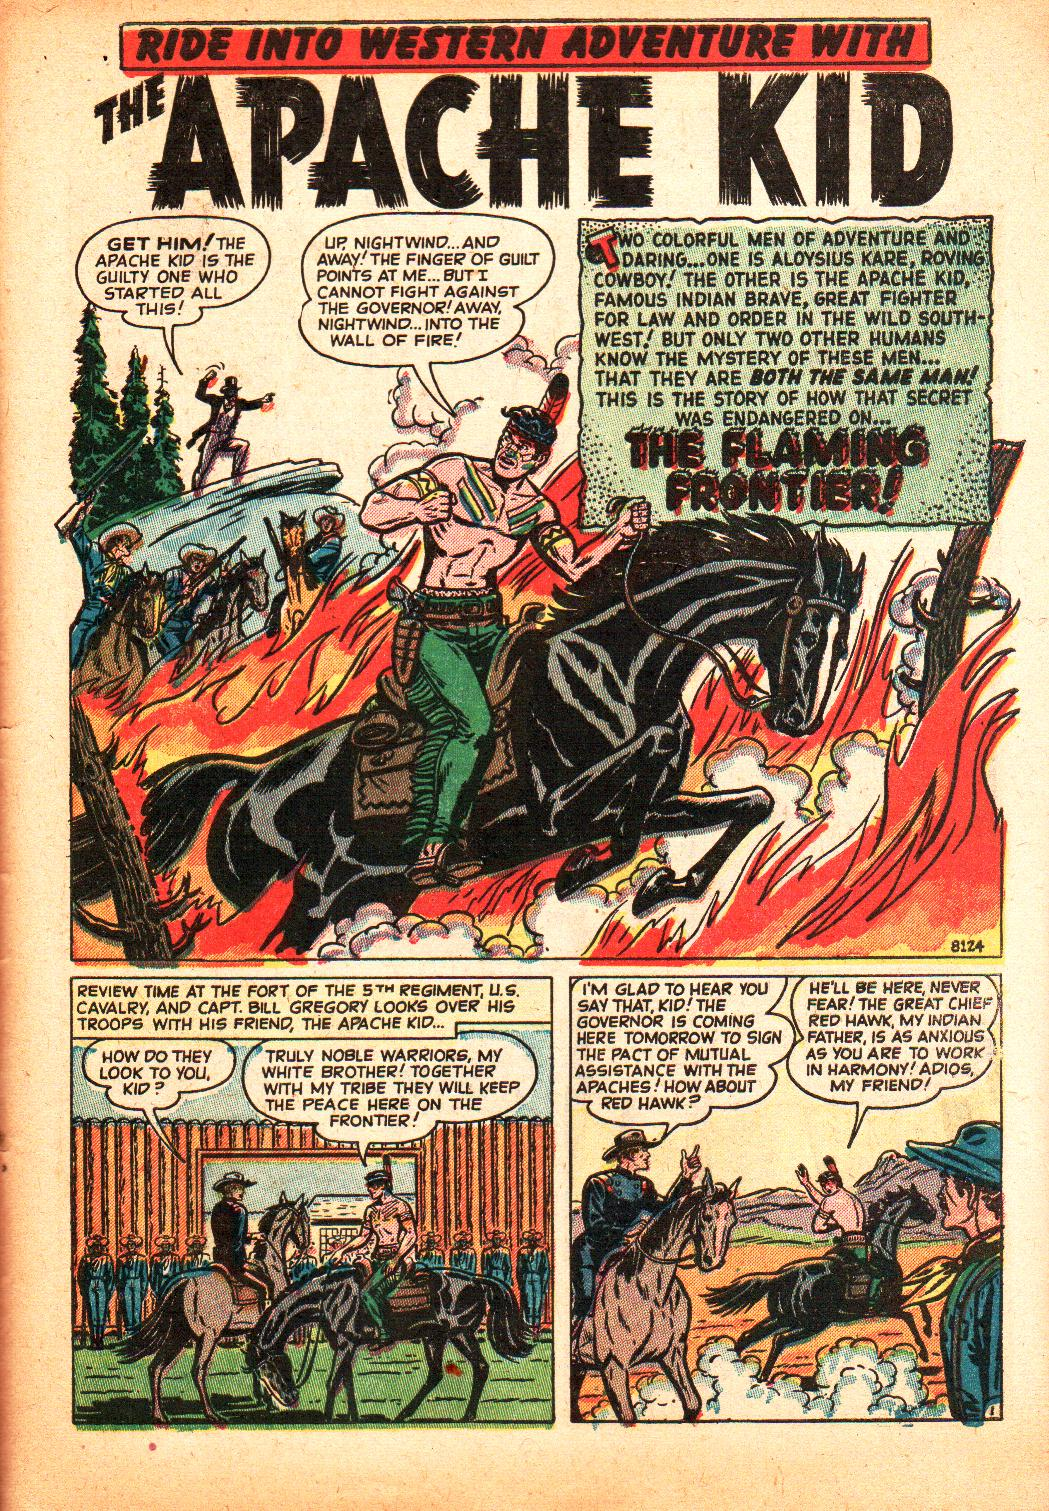 8124 The Flaming Frontier! Page 1